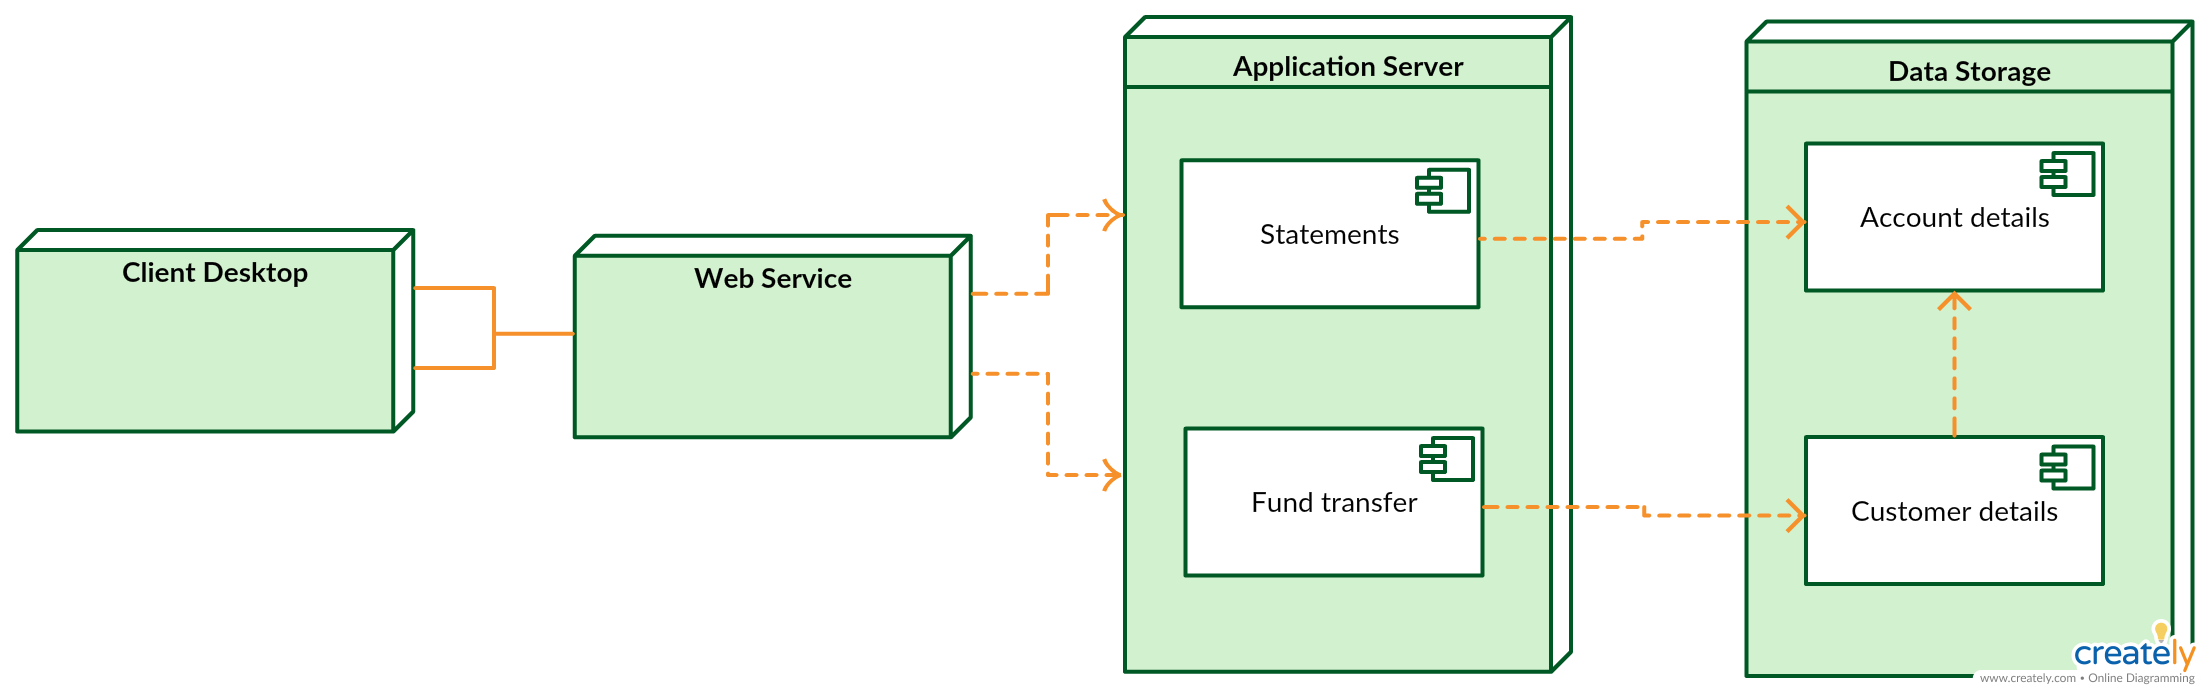 small resolution of deployment diagram for online banking transaction system this diagram illustrates the deployment diagram template for online bank transaction process